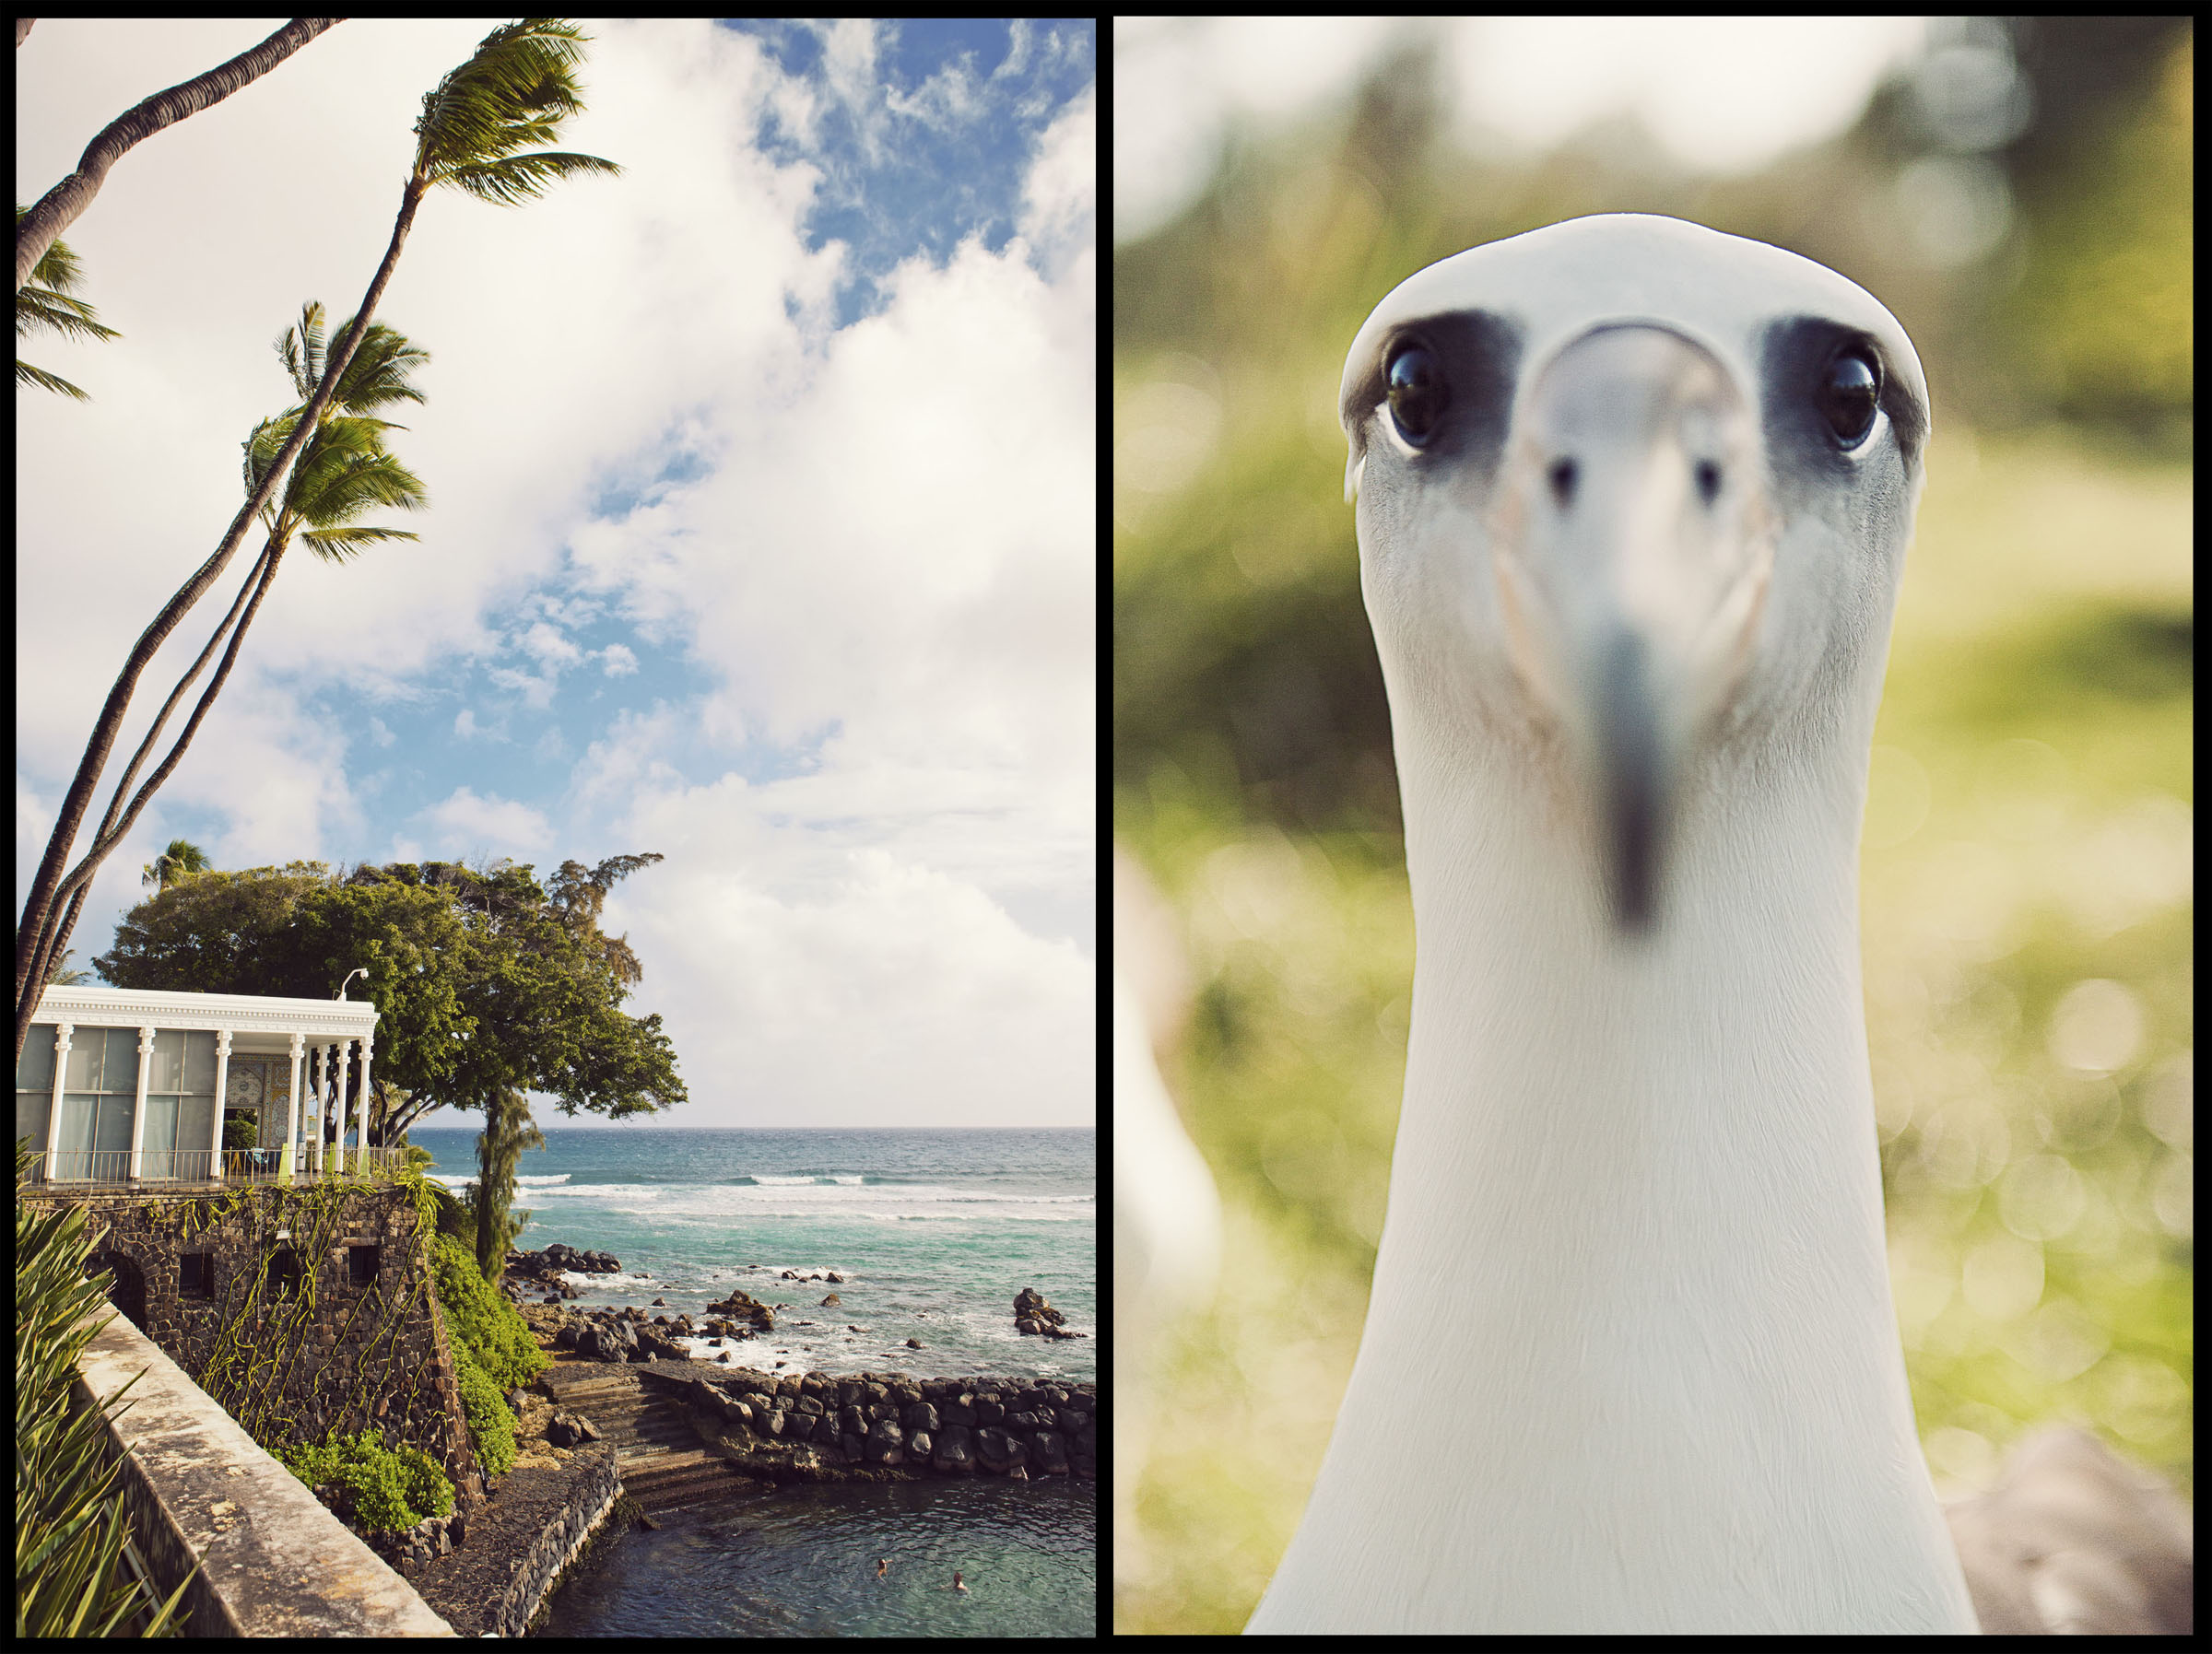 Doris Duke's Shangri La in Honolulu.  An albatross on Midway Island.